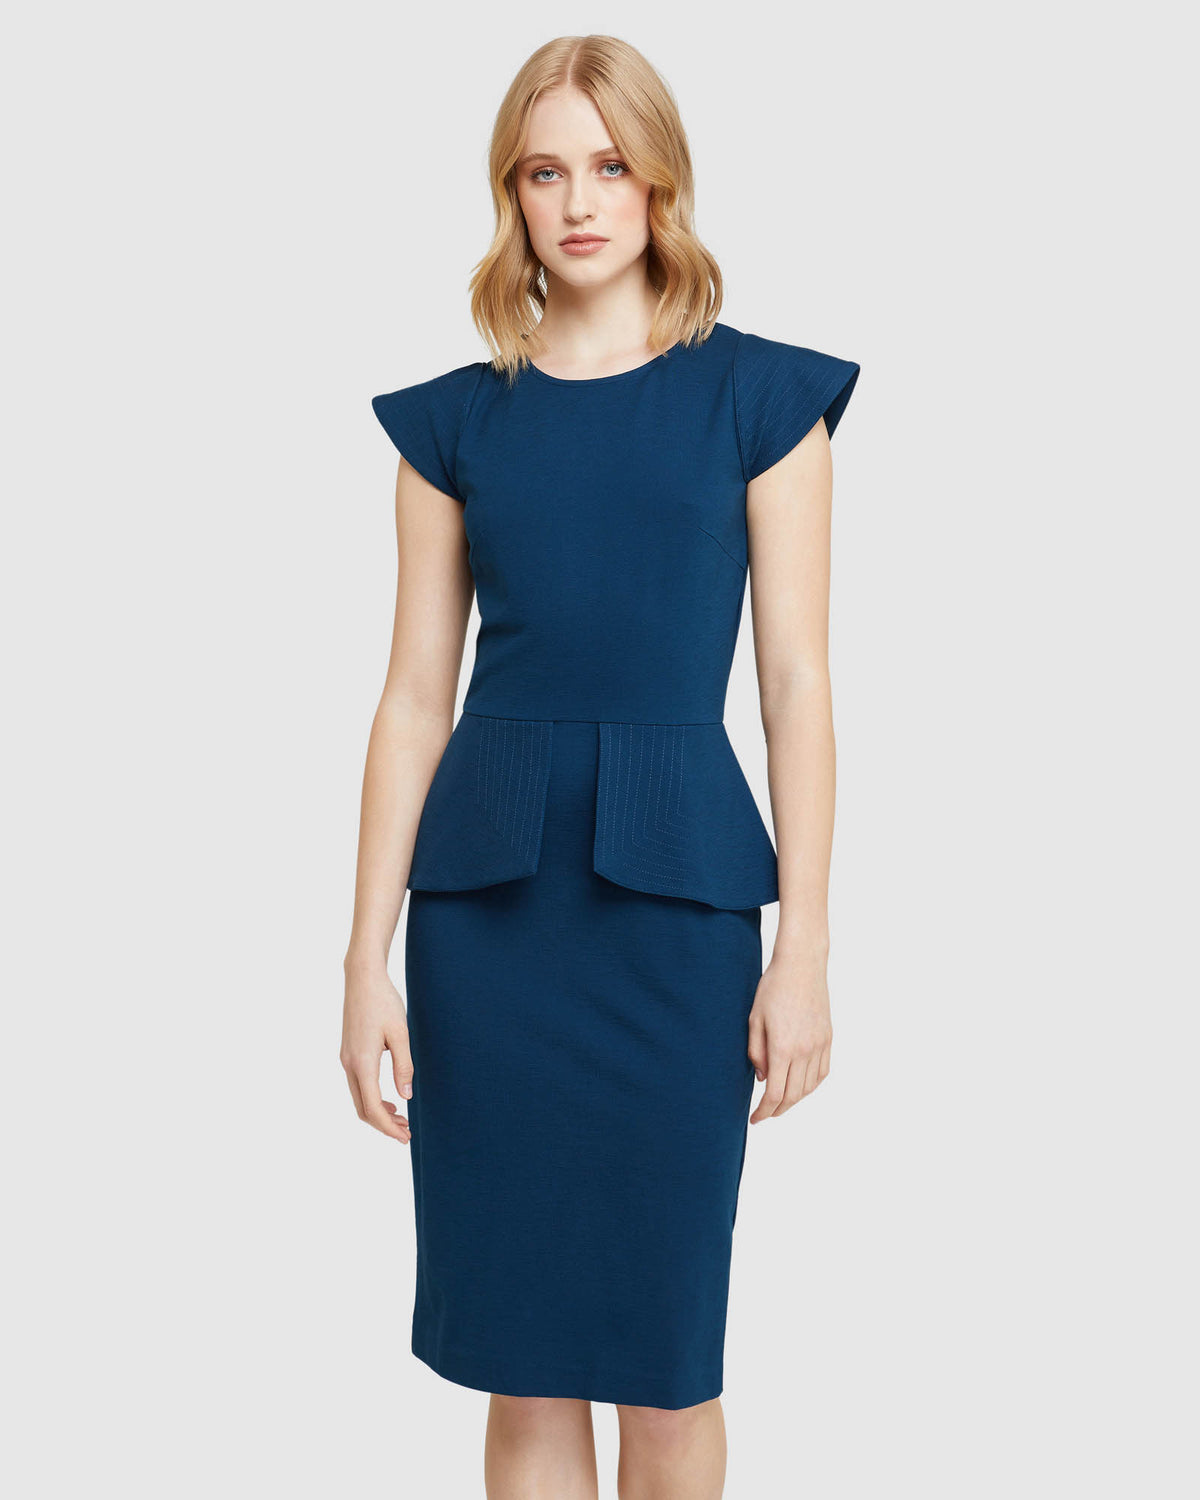 BELLA PEPLUM PONTI DRESS